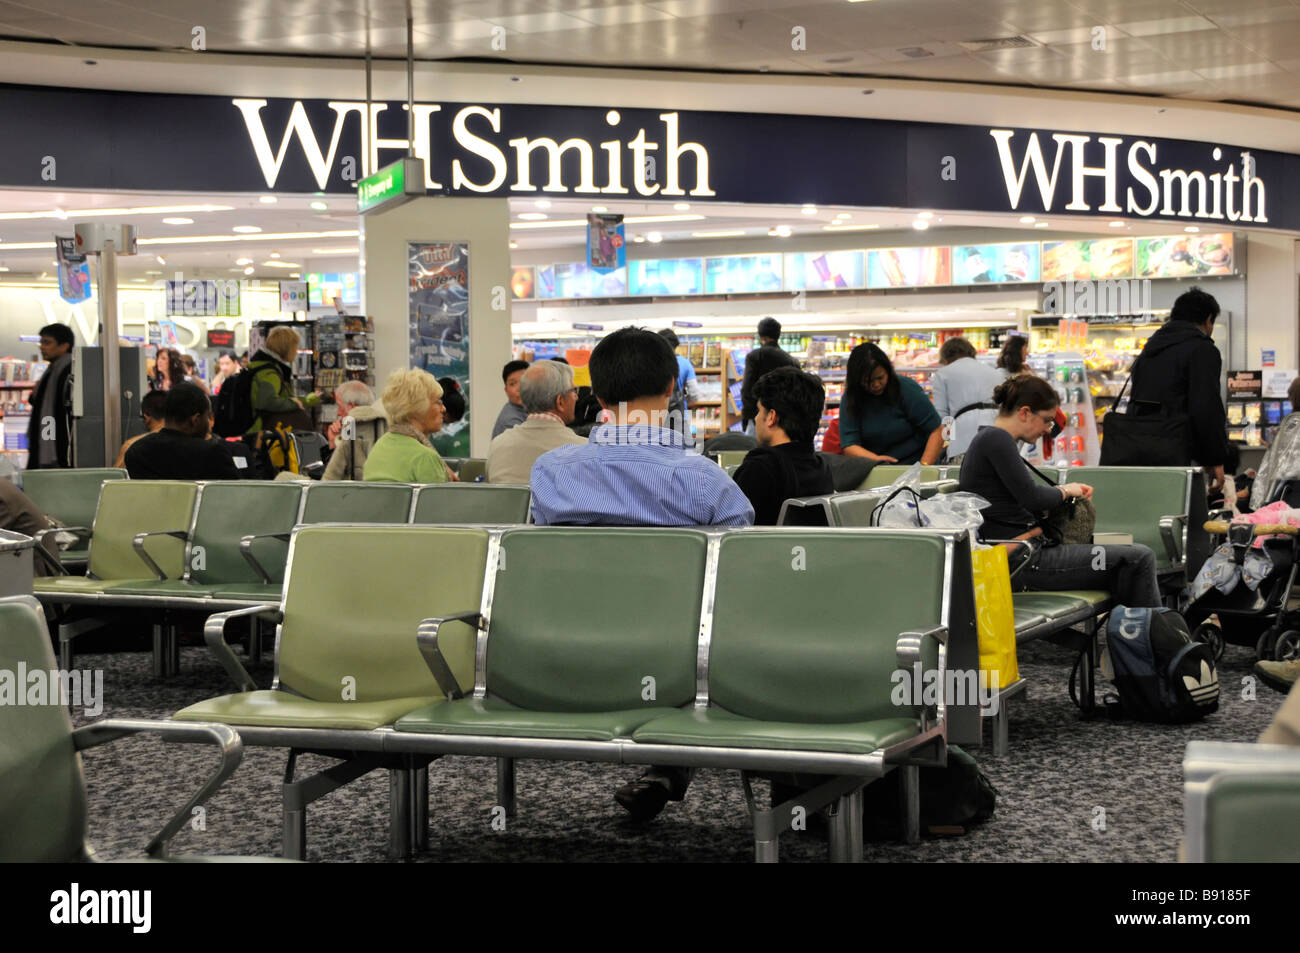 London Heathrow Airport terminal 3 interior passengers in departure lounge beside WH Smith shop Stock Photo